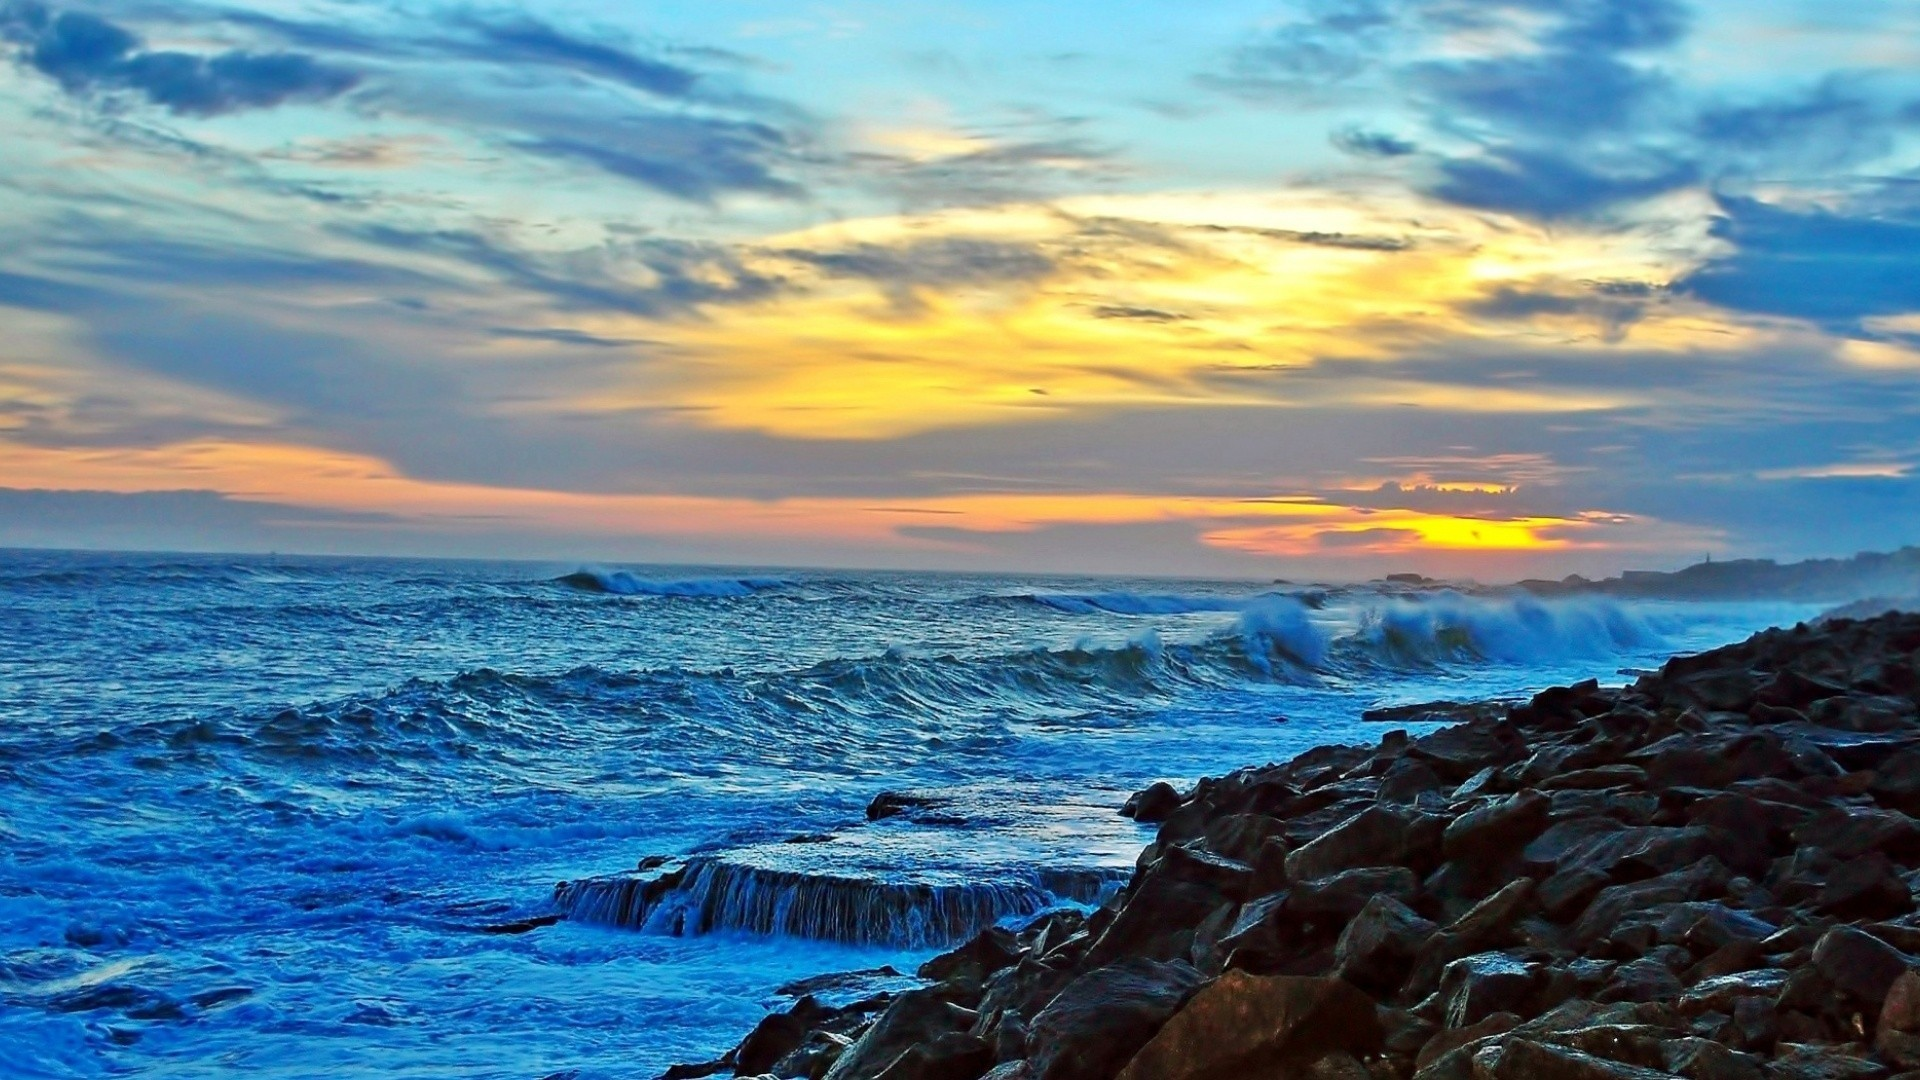 Beach Angry Sea Rocky Coast Sunset Clouds Waves Surf Rocks Nature Paradise  India Wallpaper Iphone 6